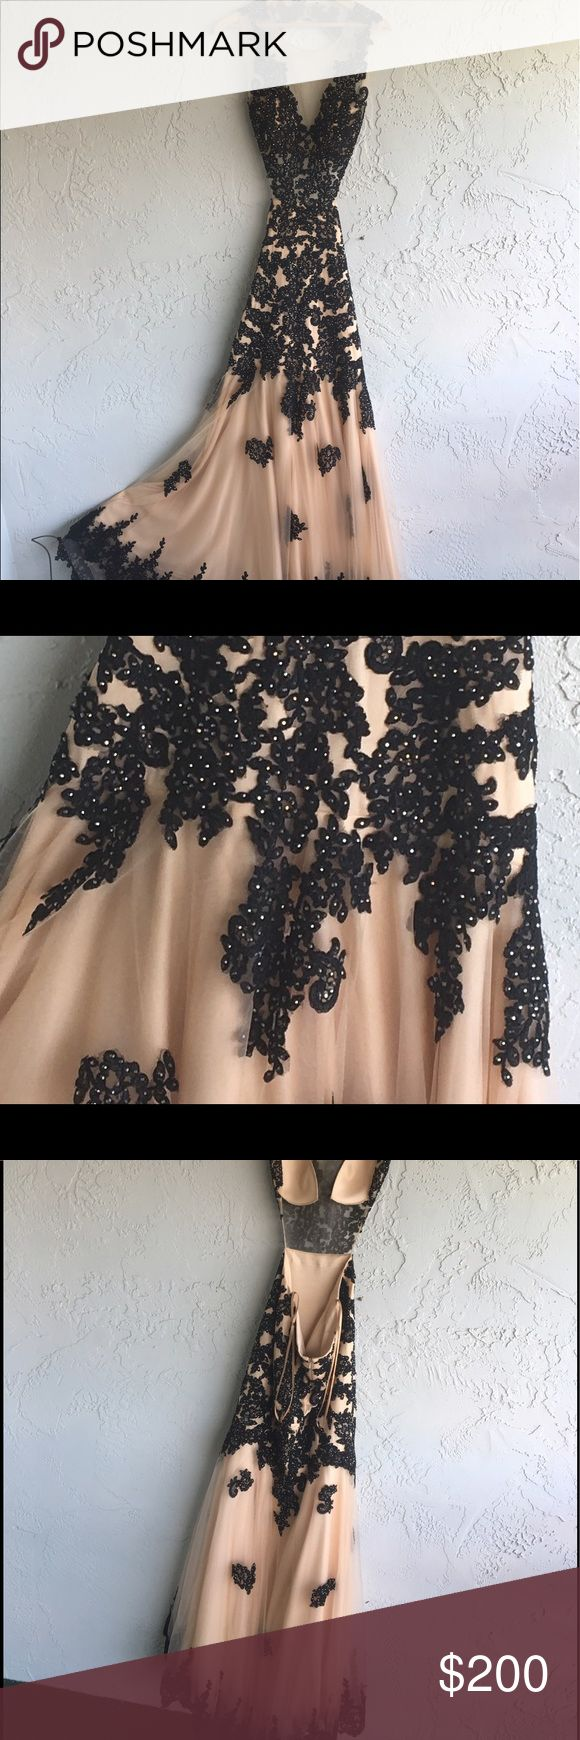 Black and cream formal dress This lovely dress is a size: 9/10 can be worn to a gala or prom or any formal event. Black lace and black jewels on a cream coat with open back and small train. camille la vie Dresses Prom